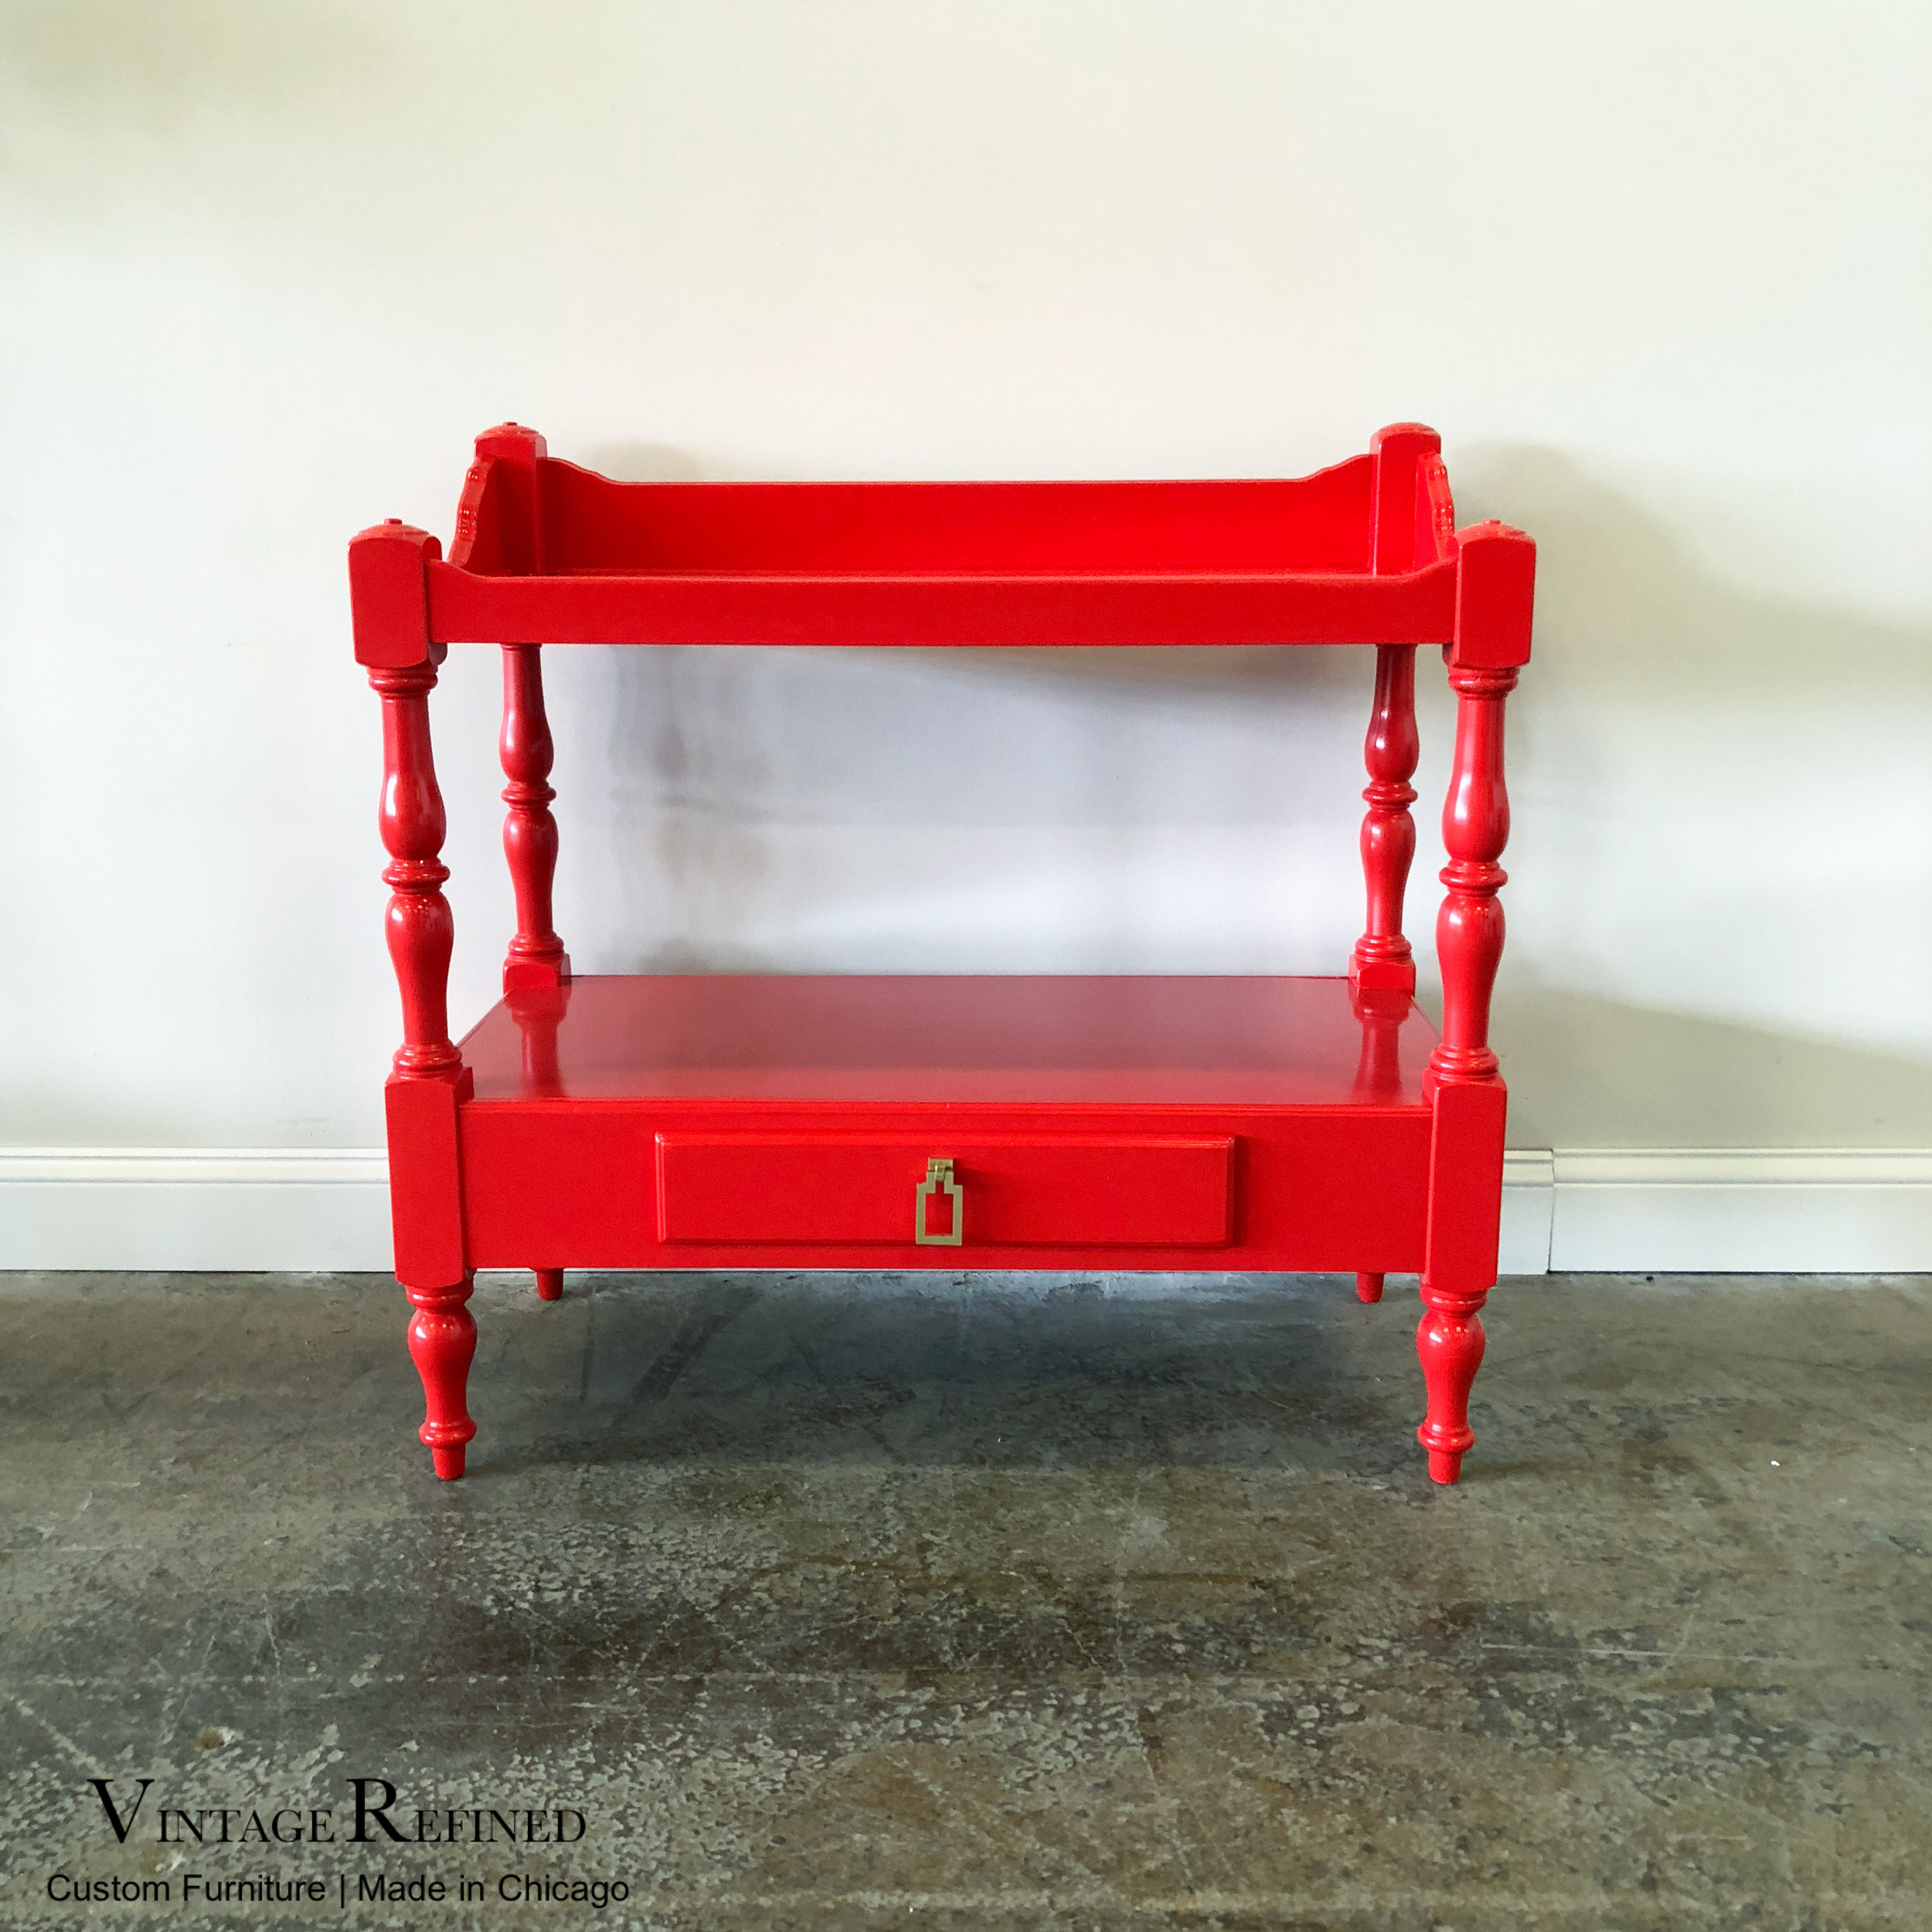 - Vintage Refined - AVAILABLE: Red Lacquer Bar Cart / Accent Table